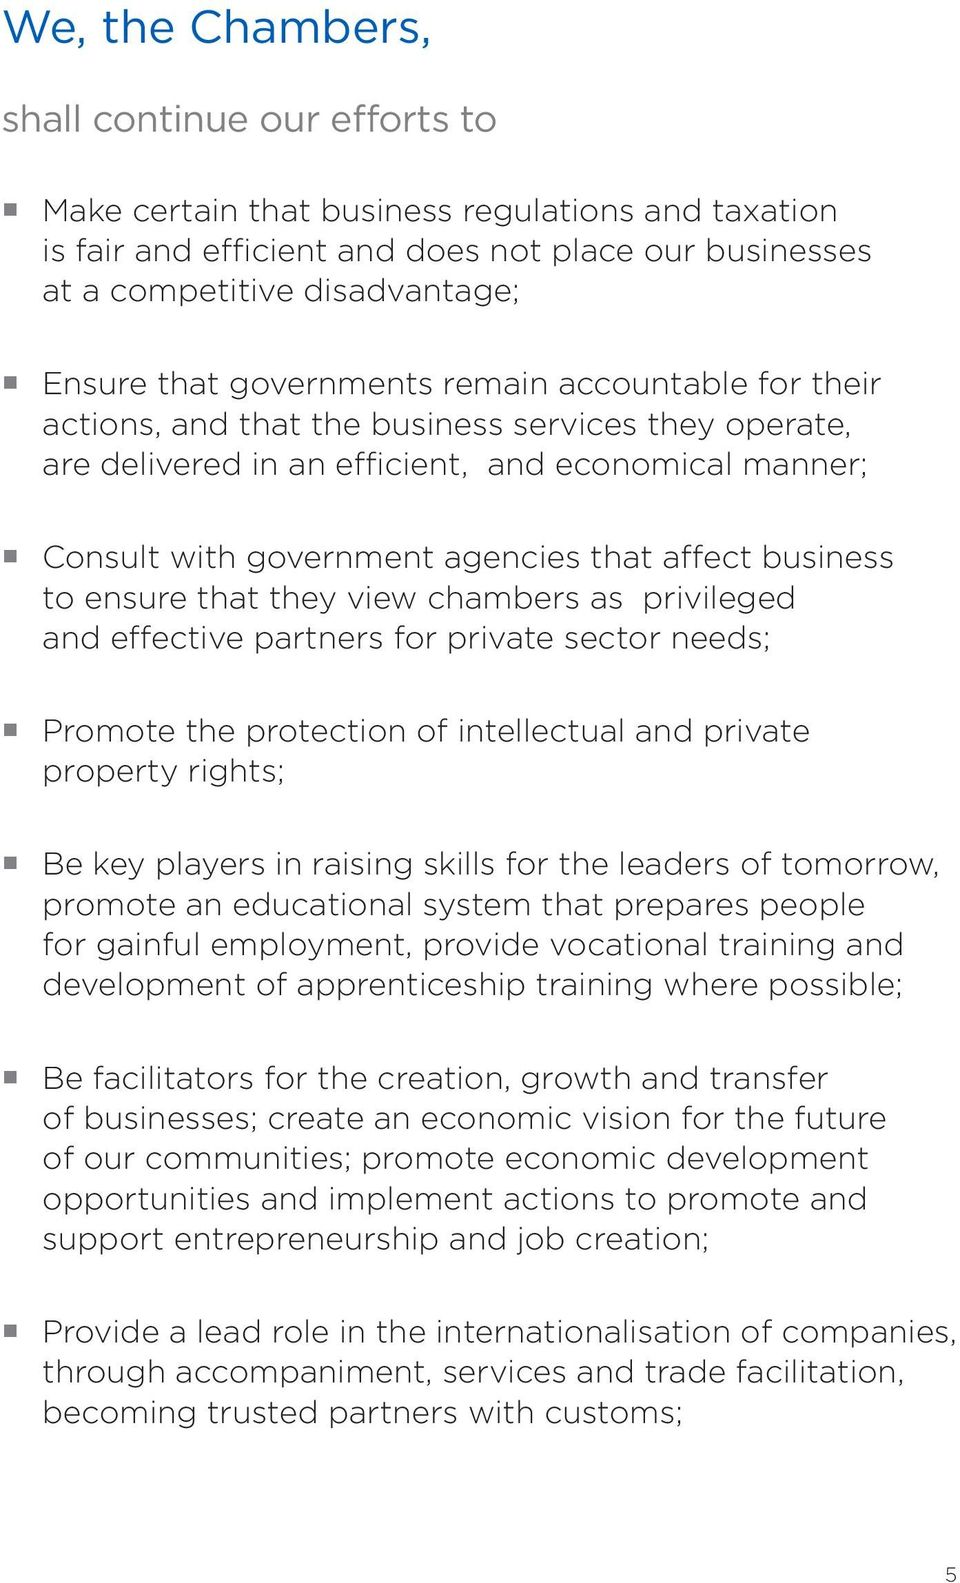 business to ensure that they view chambers as privileged and effective partners for private sector needs; Promote the protection of intellectual and private property rights; Be key players in raising